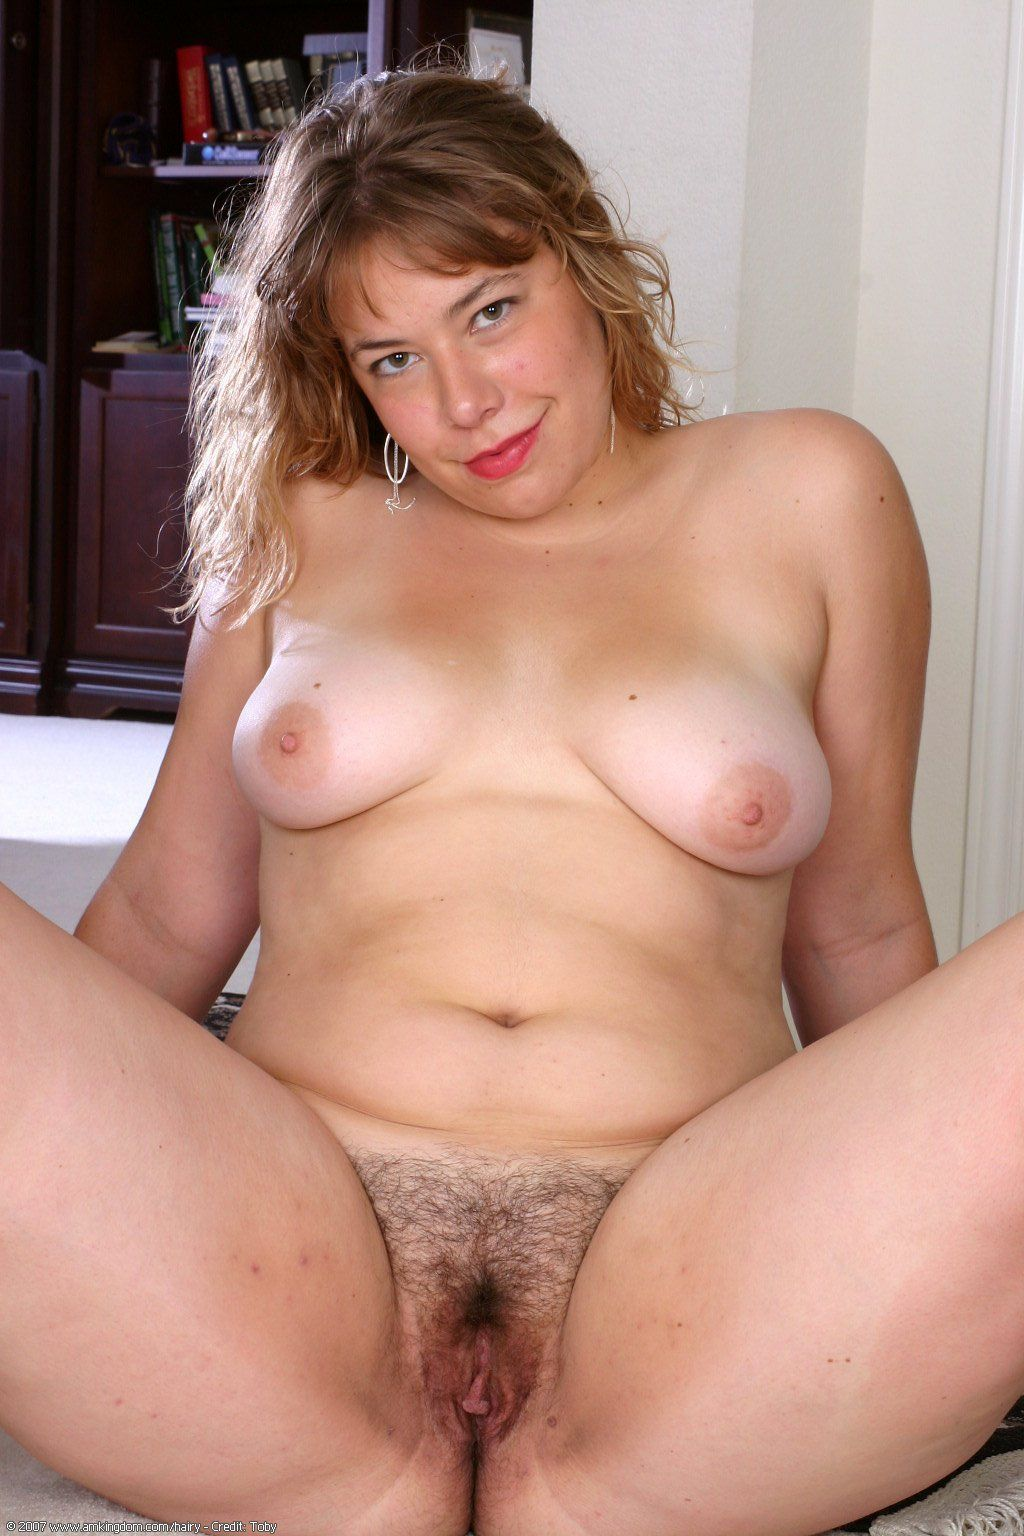 Are bbw flat chested sex opinion